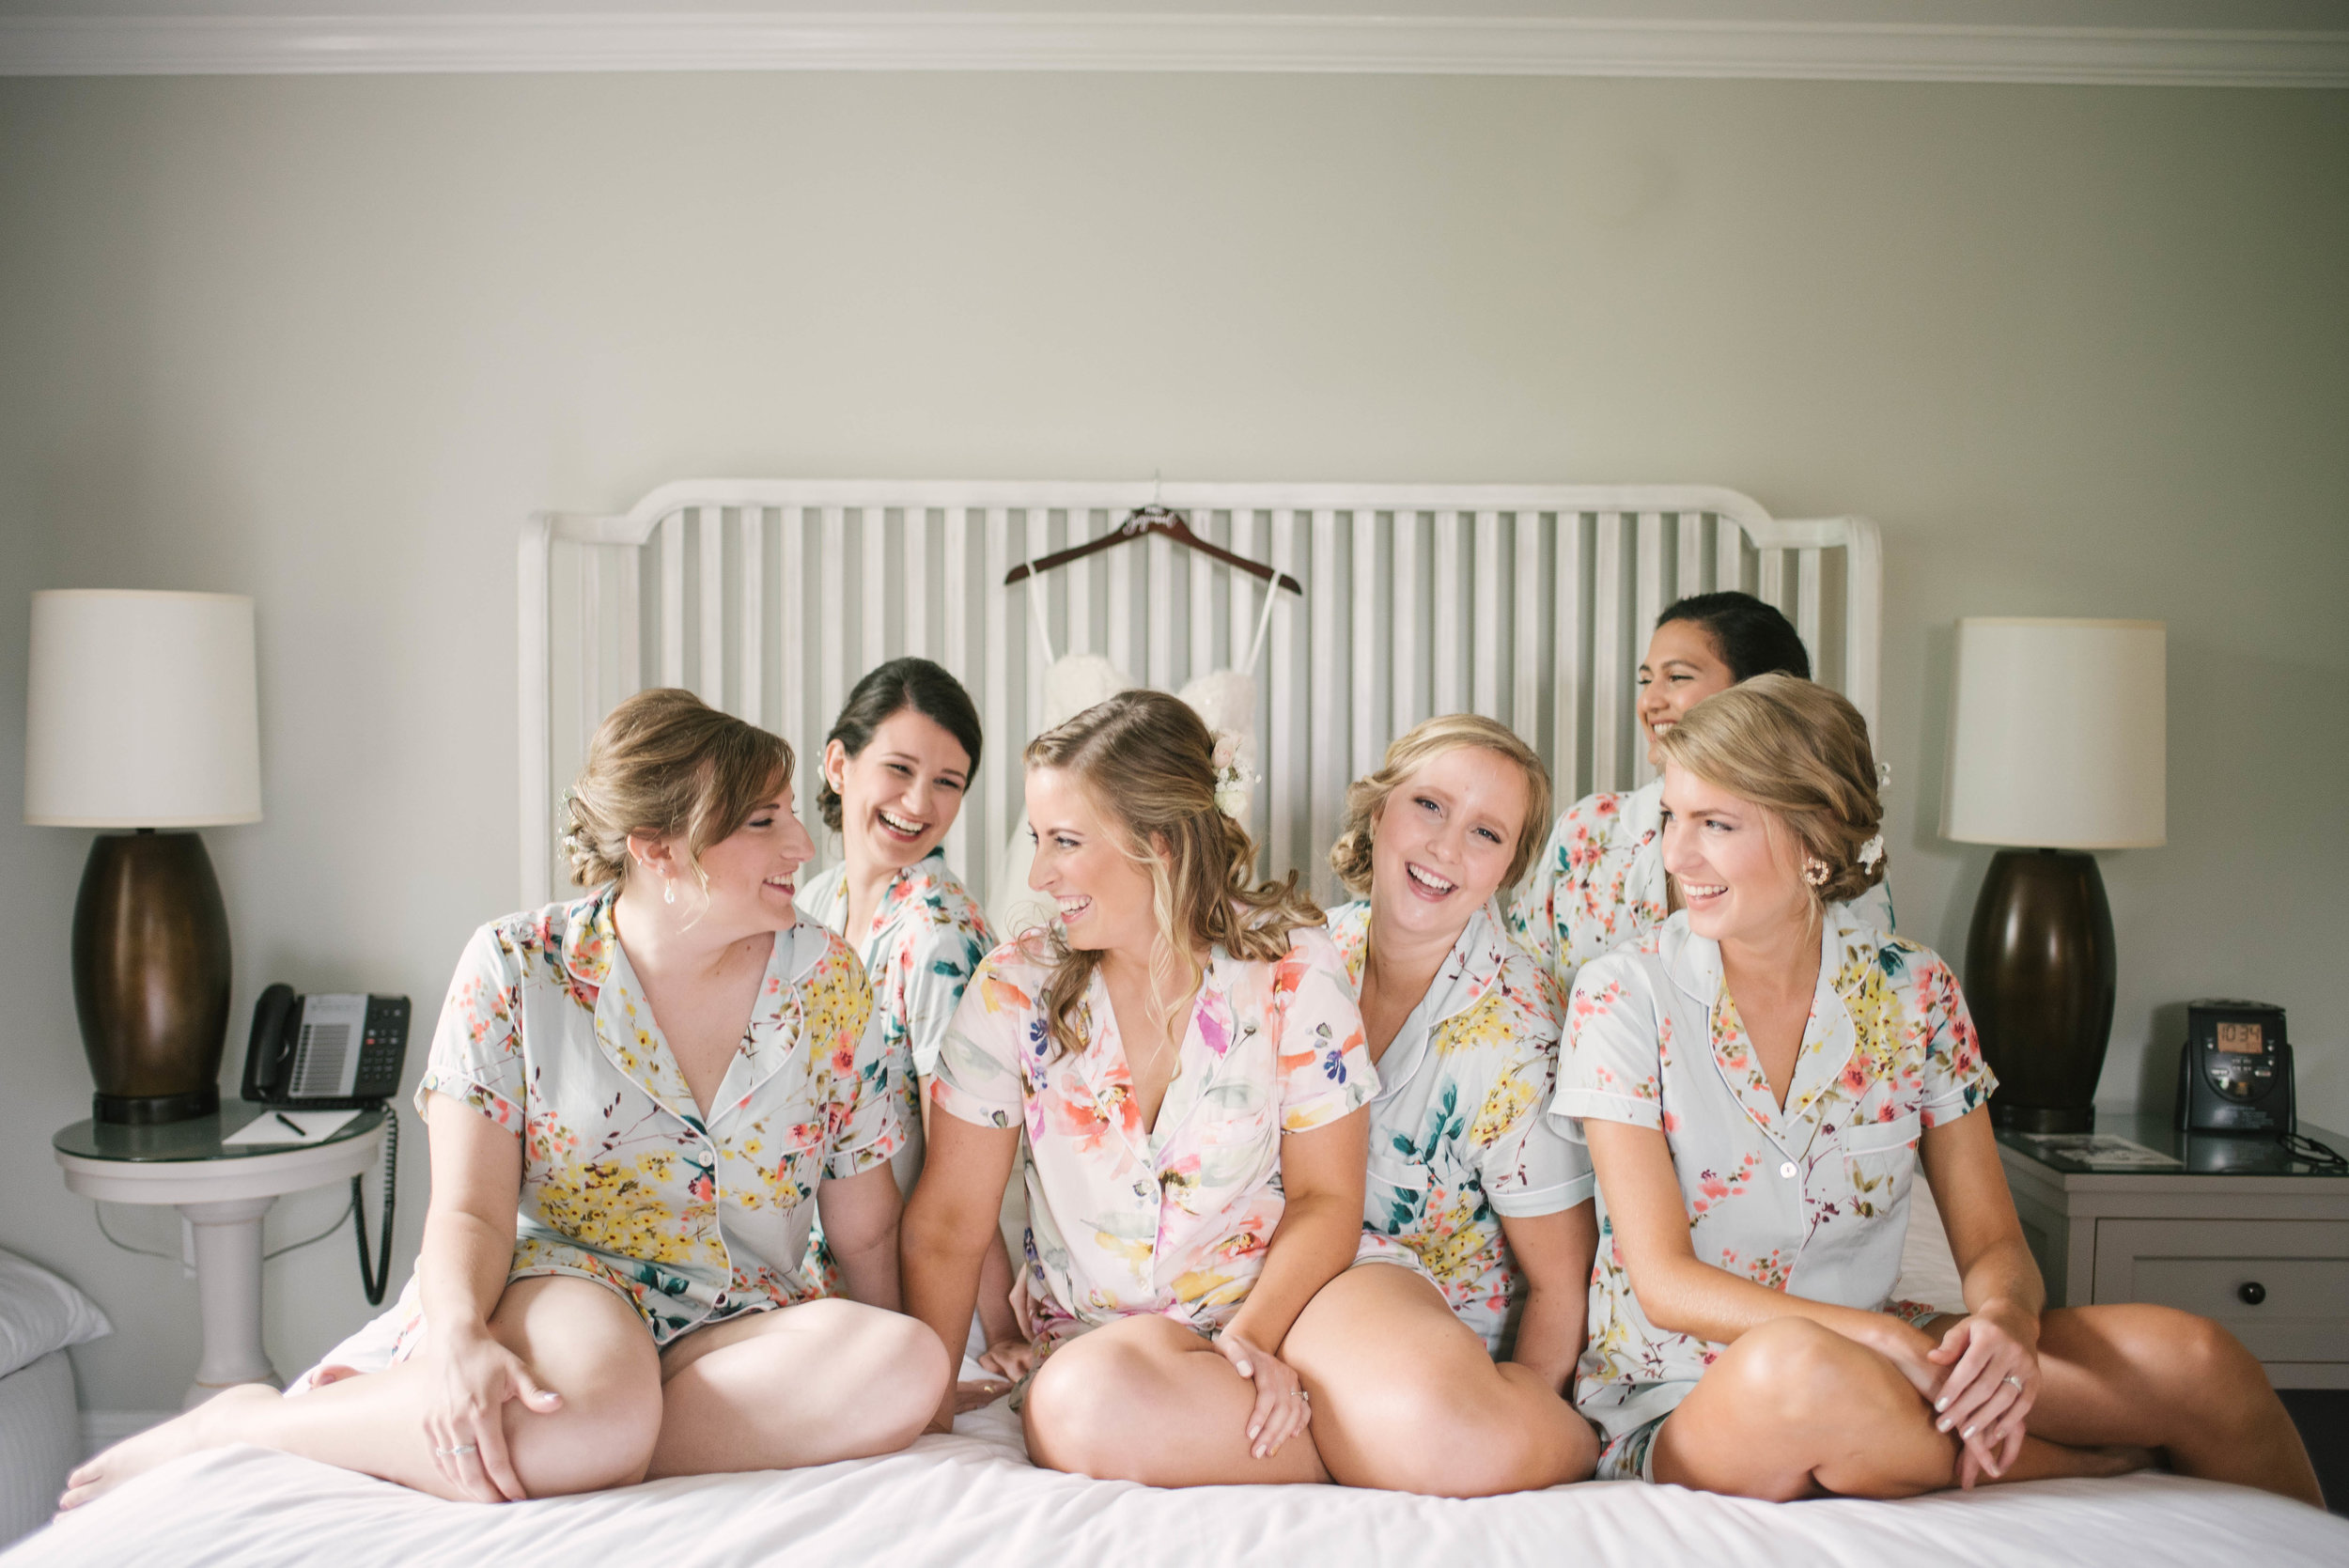 anne_casey_photography_getting_ready_details_maryland_wedding_coordinator